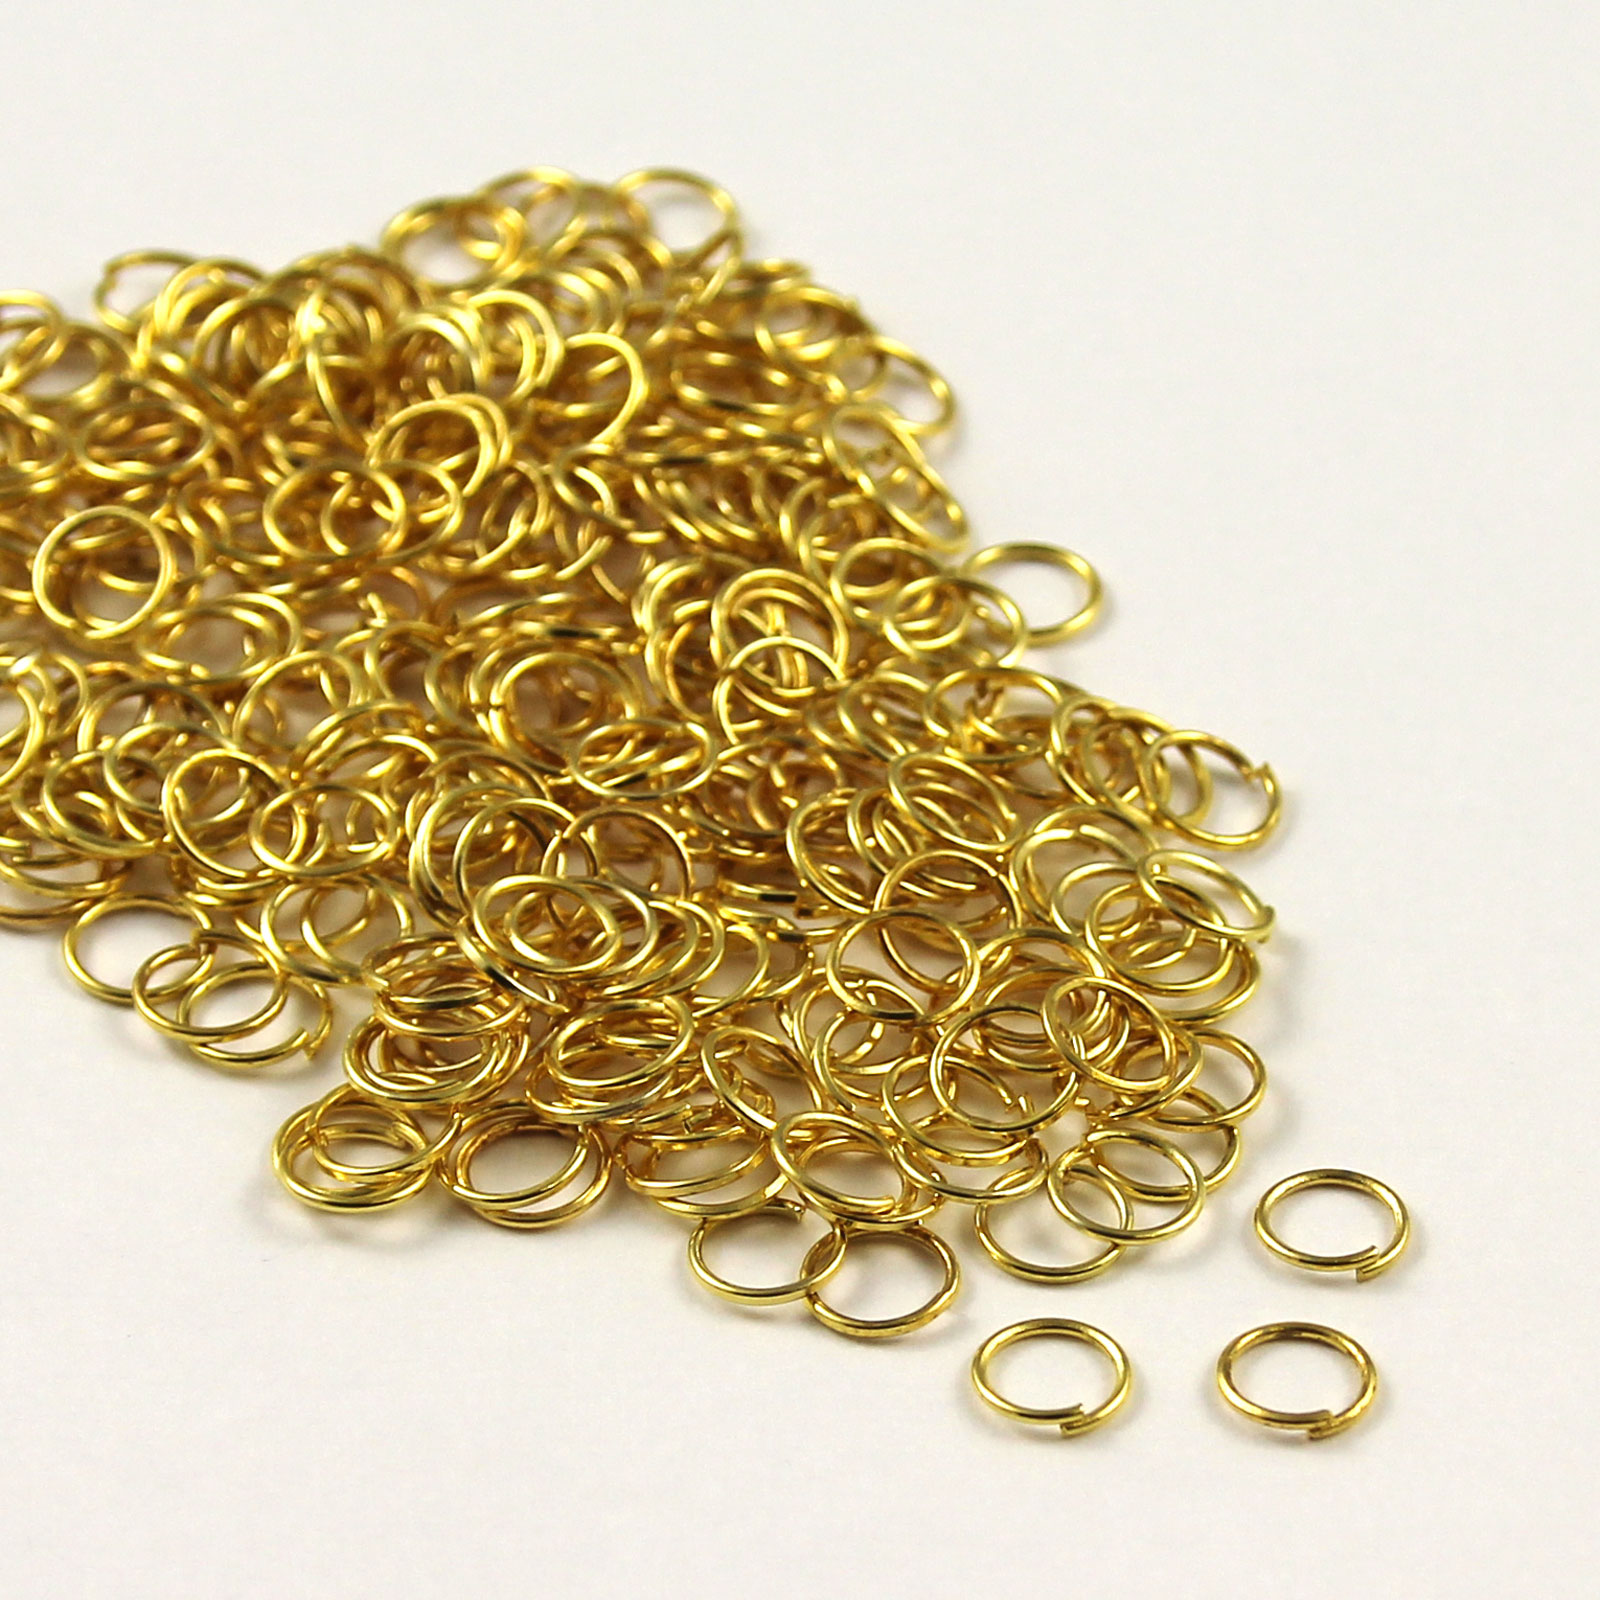 Bronze-Gold-SILVER-PLATED-Metal-JUMP-RINGS-4-5-6-7-8-9-10mm